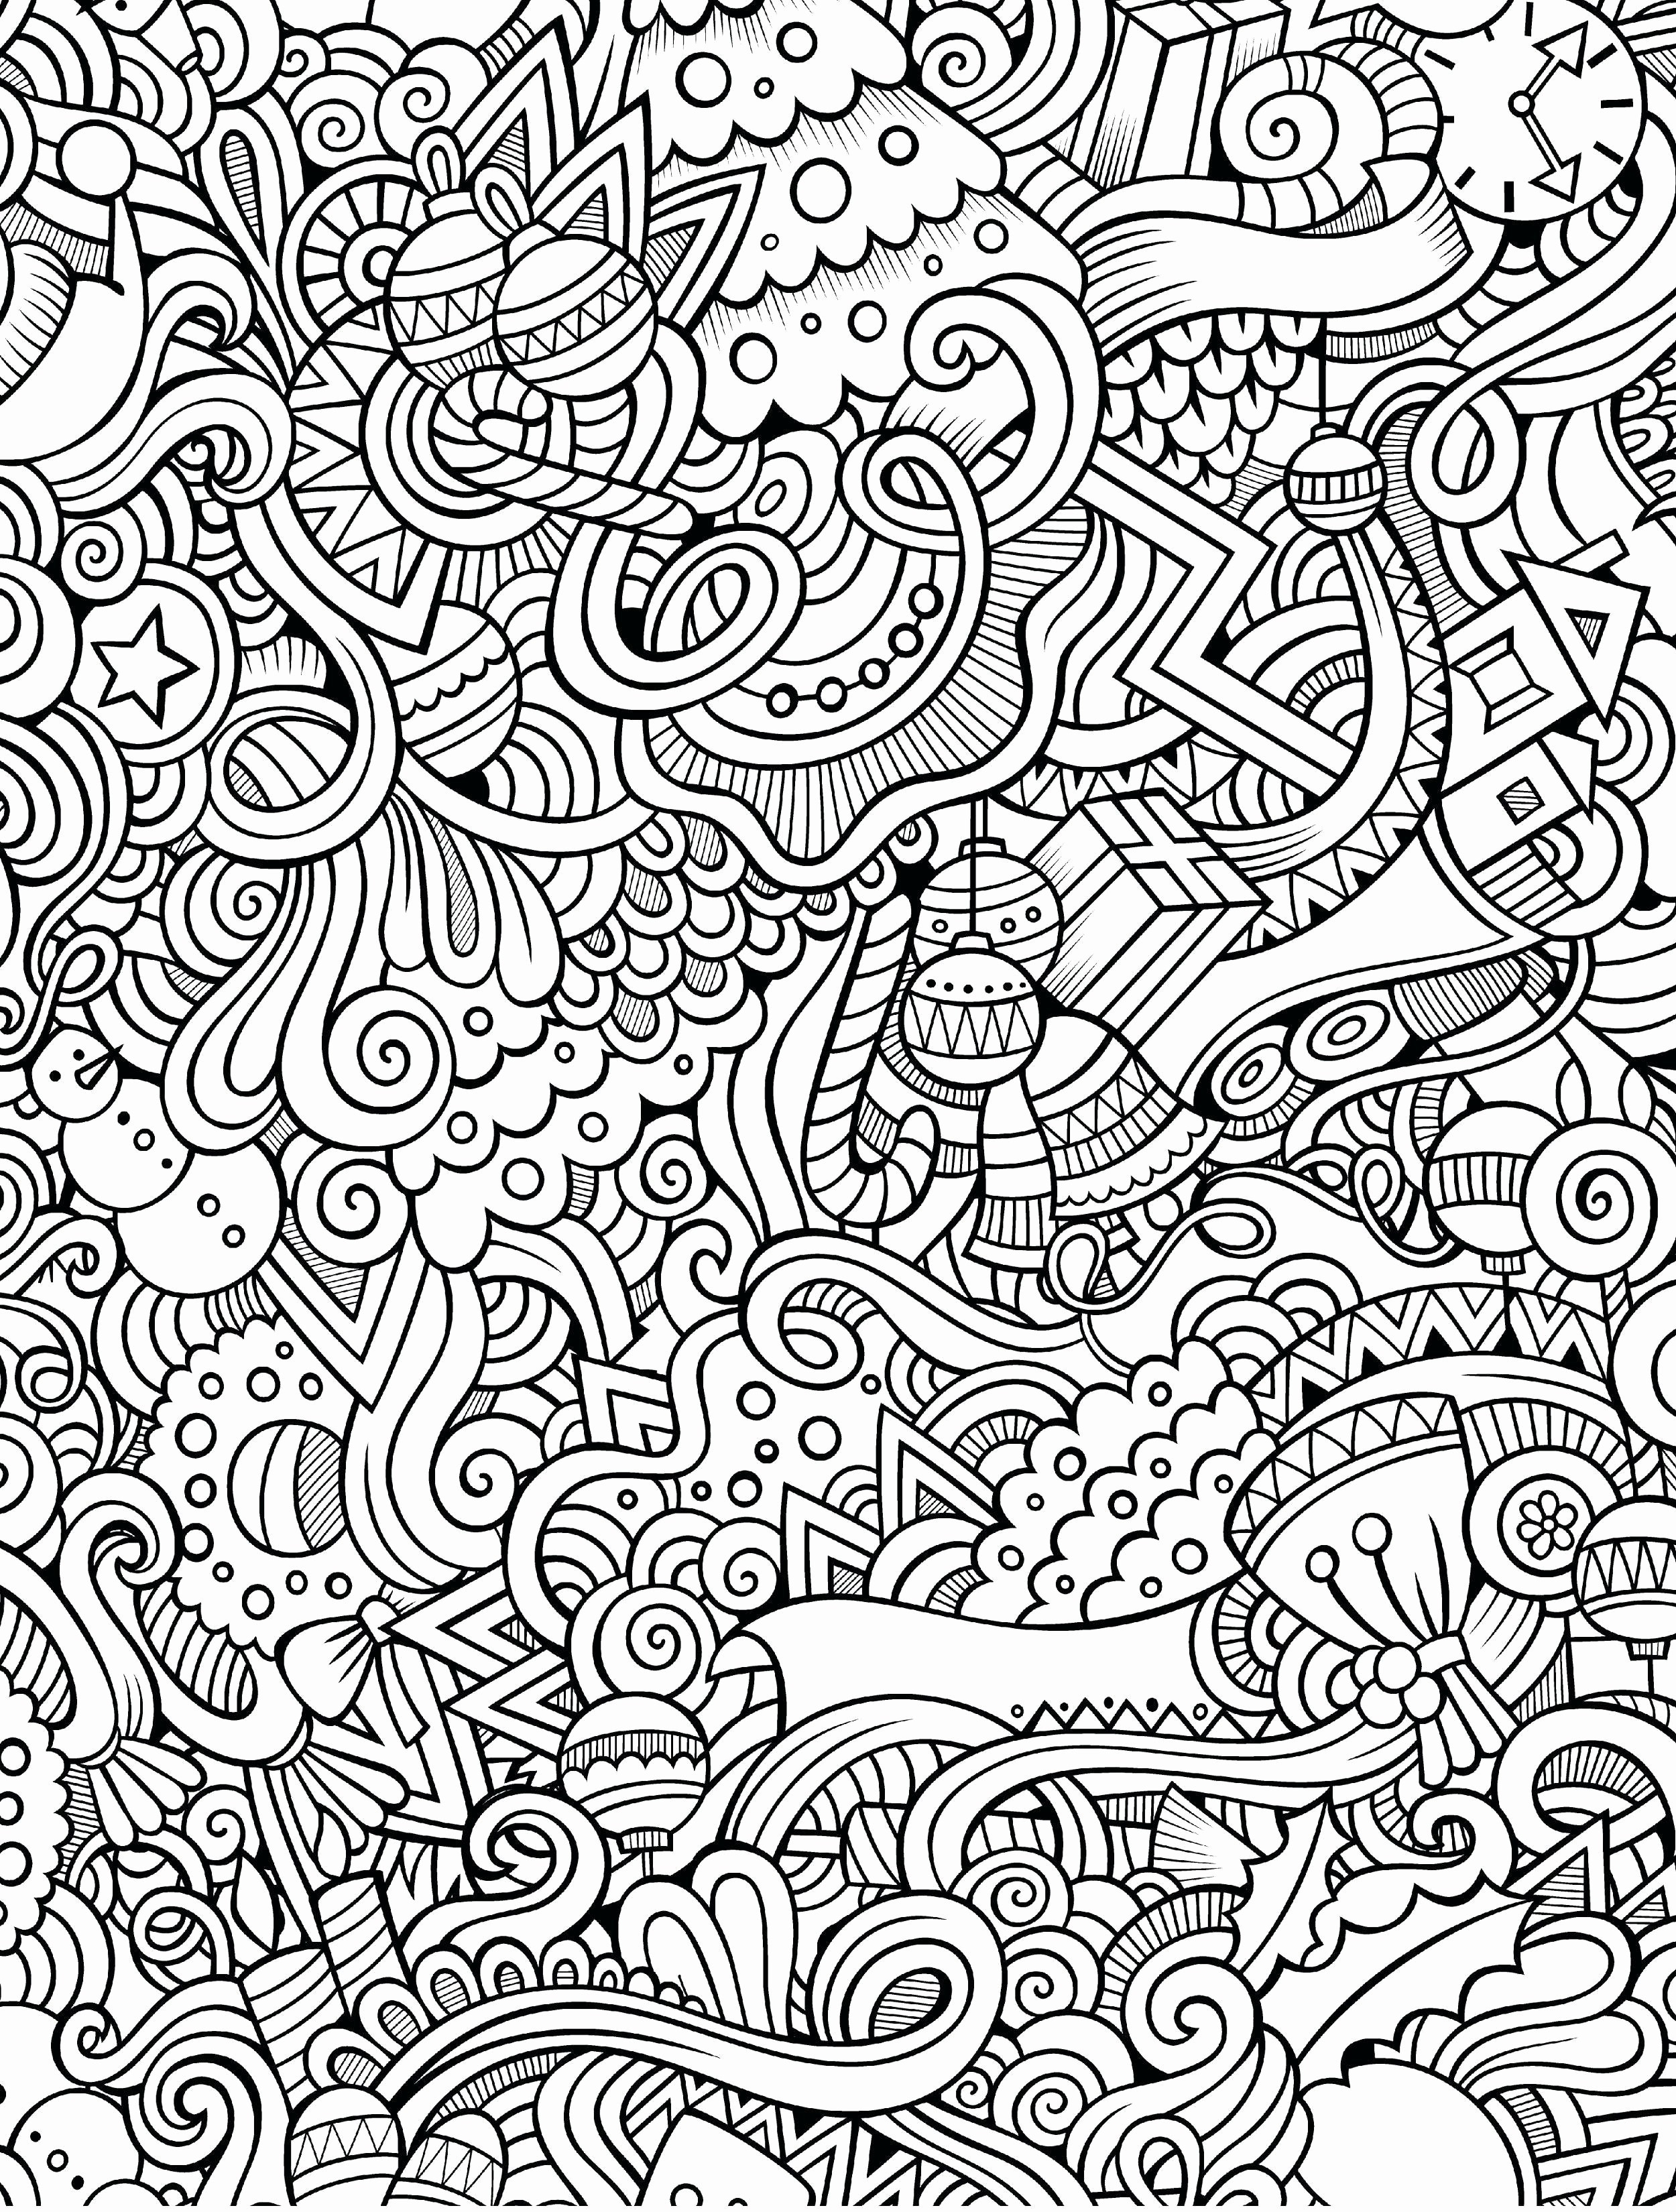 Christmas Coloring Pages Difficult For Adults With Colouring Hard Printable Page Kids